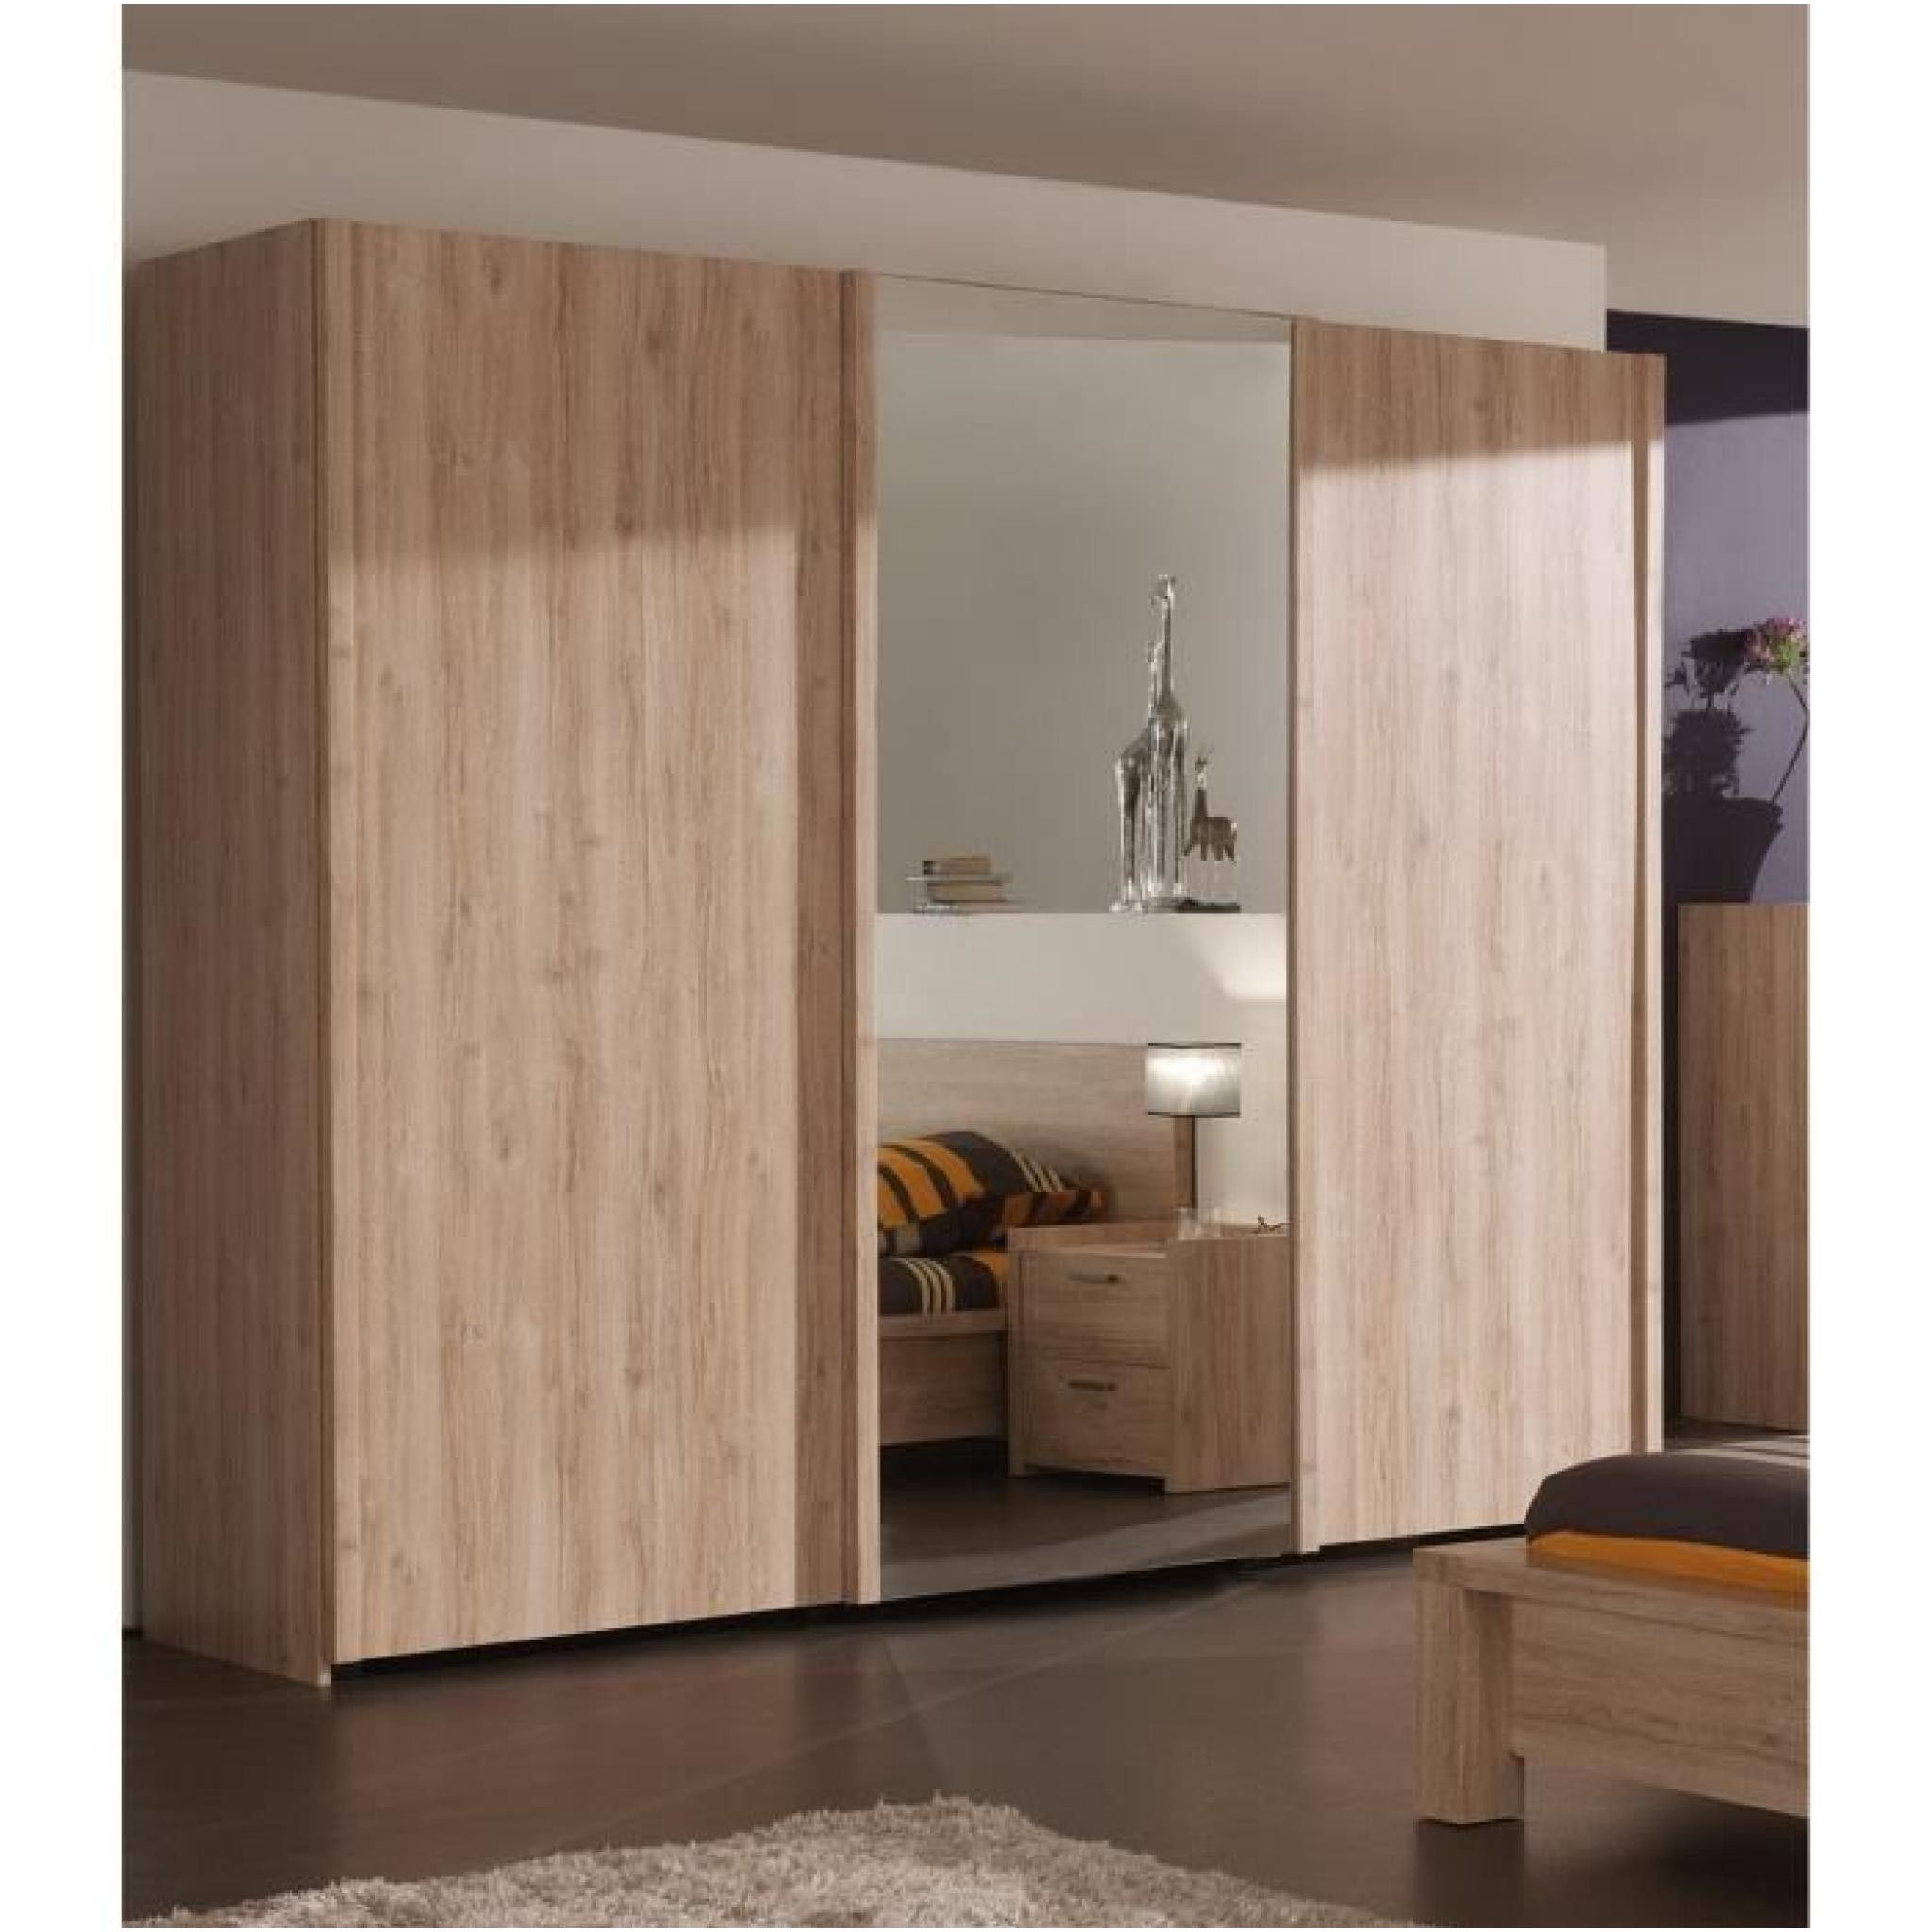 Dressing Porte Coulissante Armoire Dressing Porte Coulissante Armoire Dressing Porte